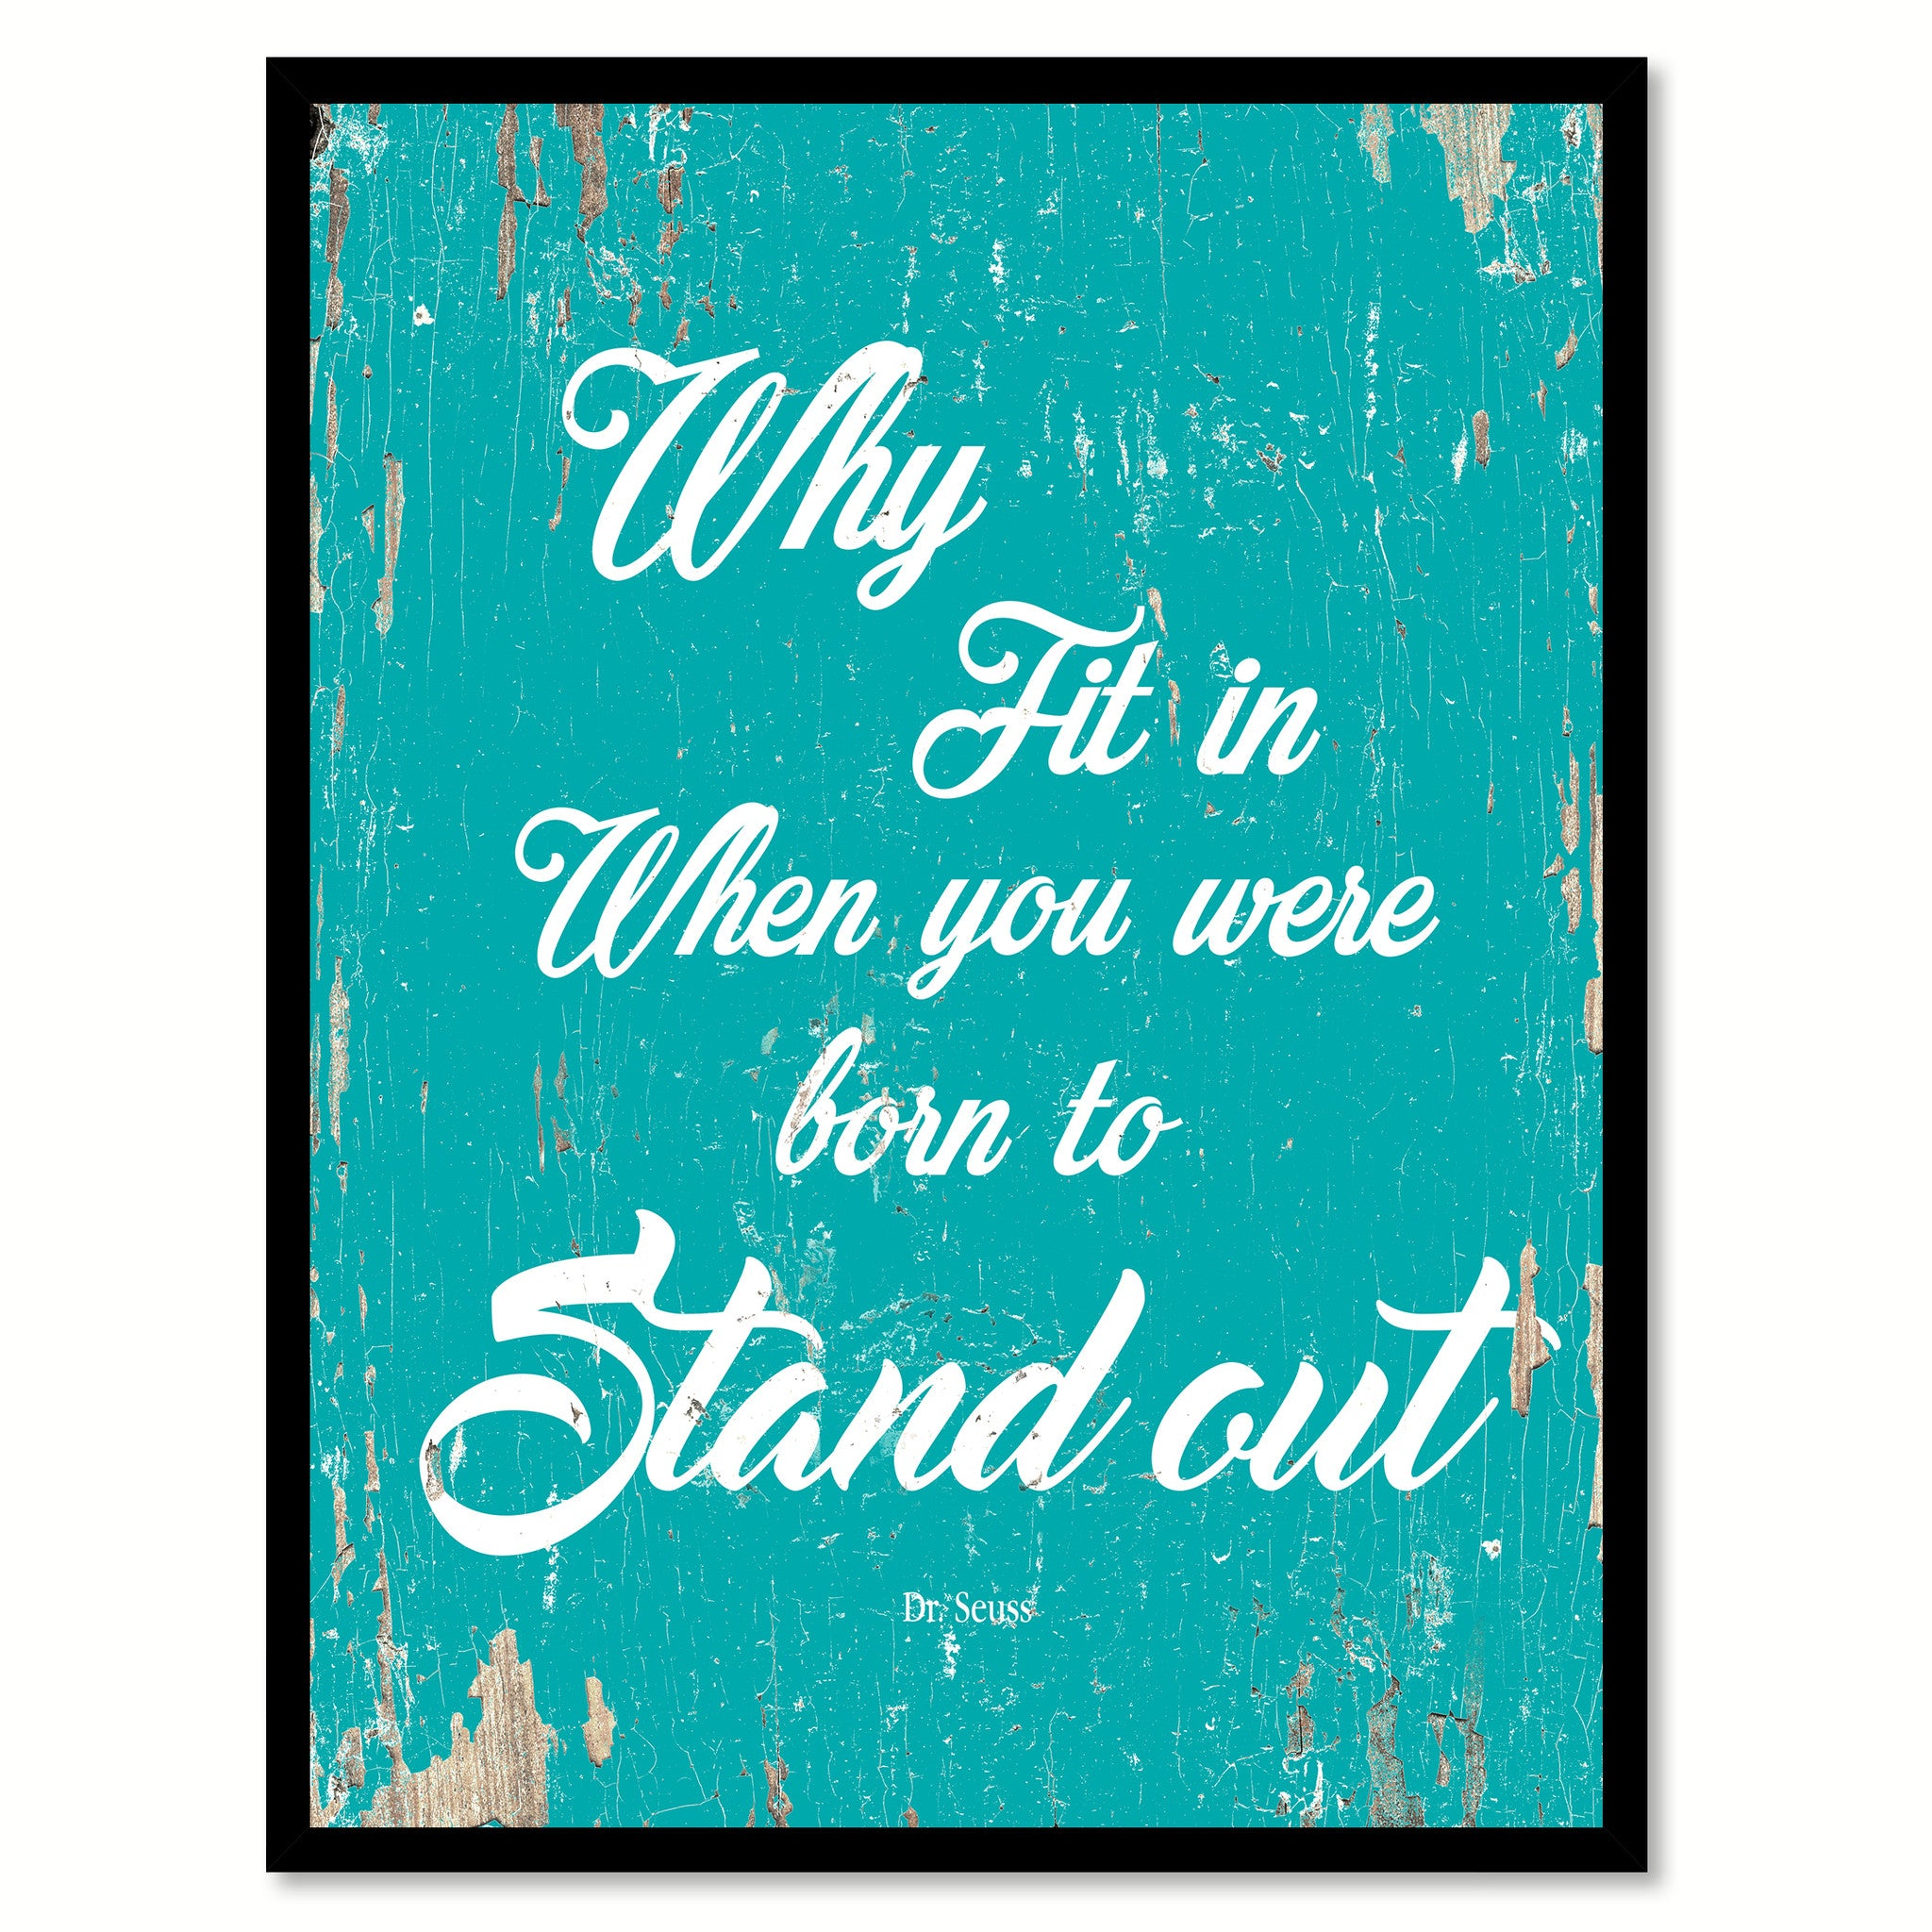 Why Fit In When You Were Born To Stand Out Dr. Seuss Quote Saying Framed  Canvas Print Home Decor Wall Art Gift Ideas 111907 Aqua